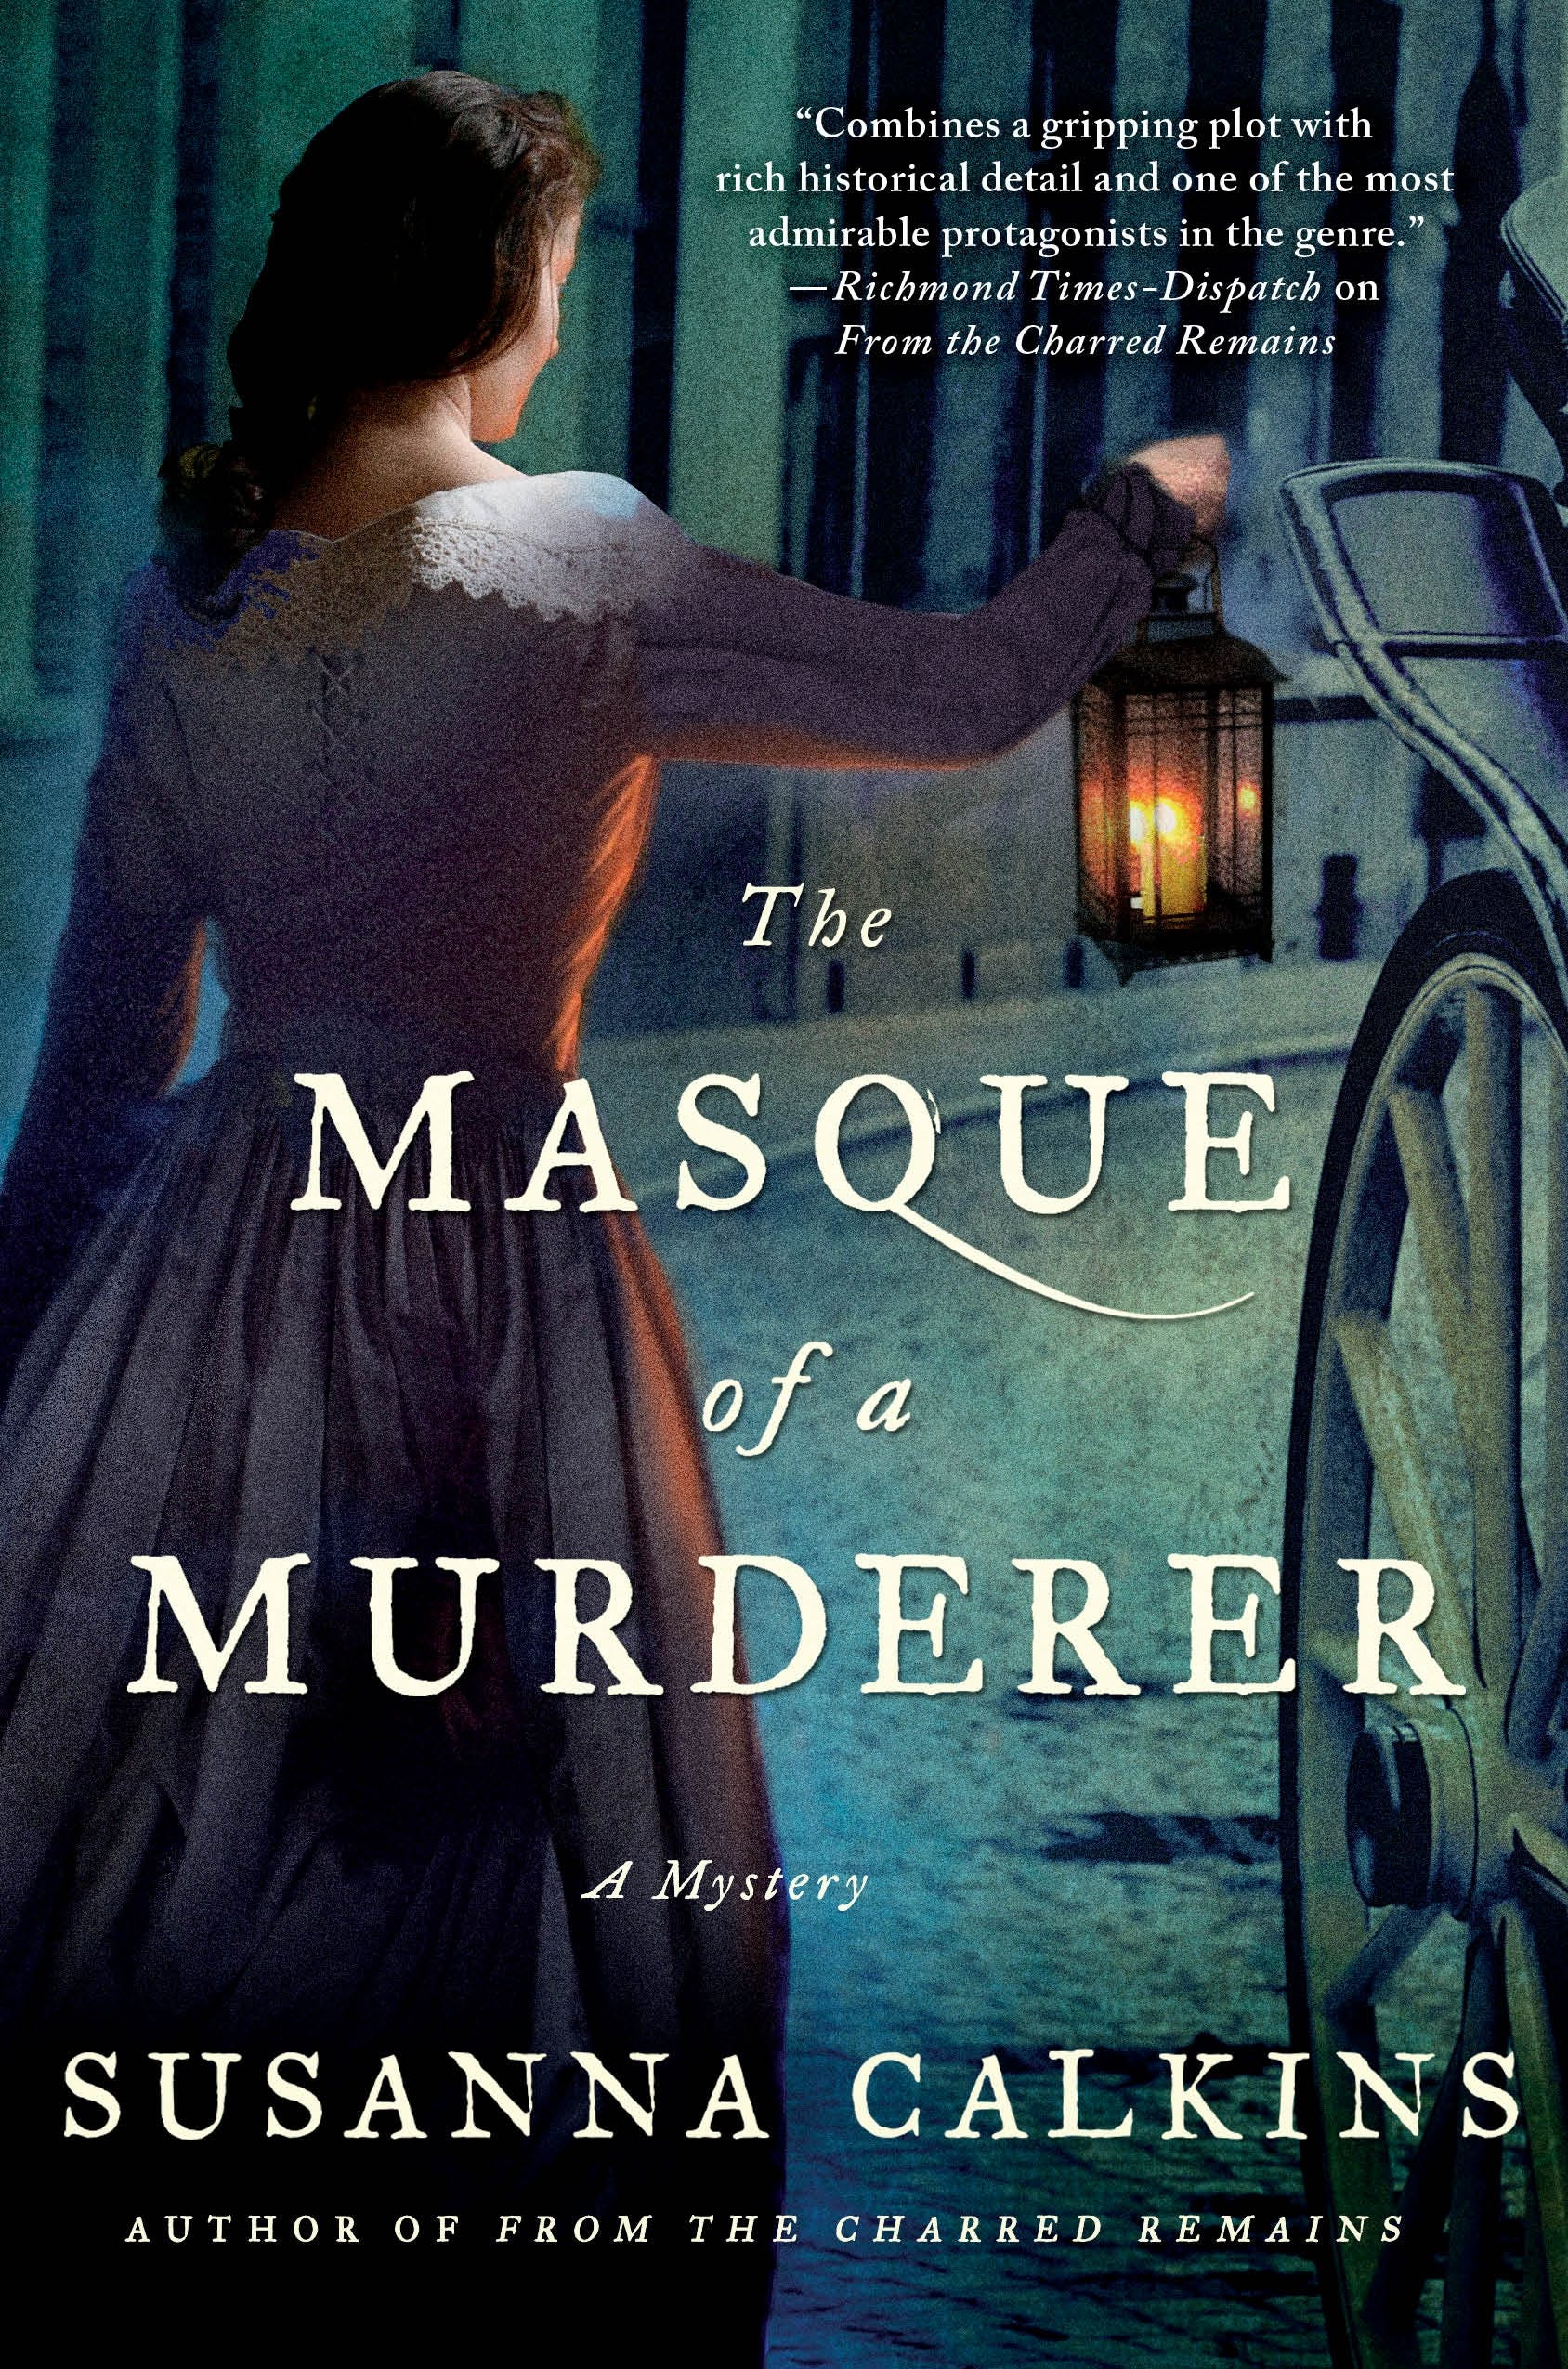 Image of The Masque of a Murderer